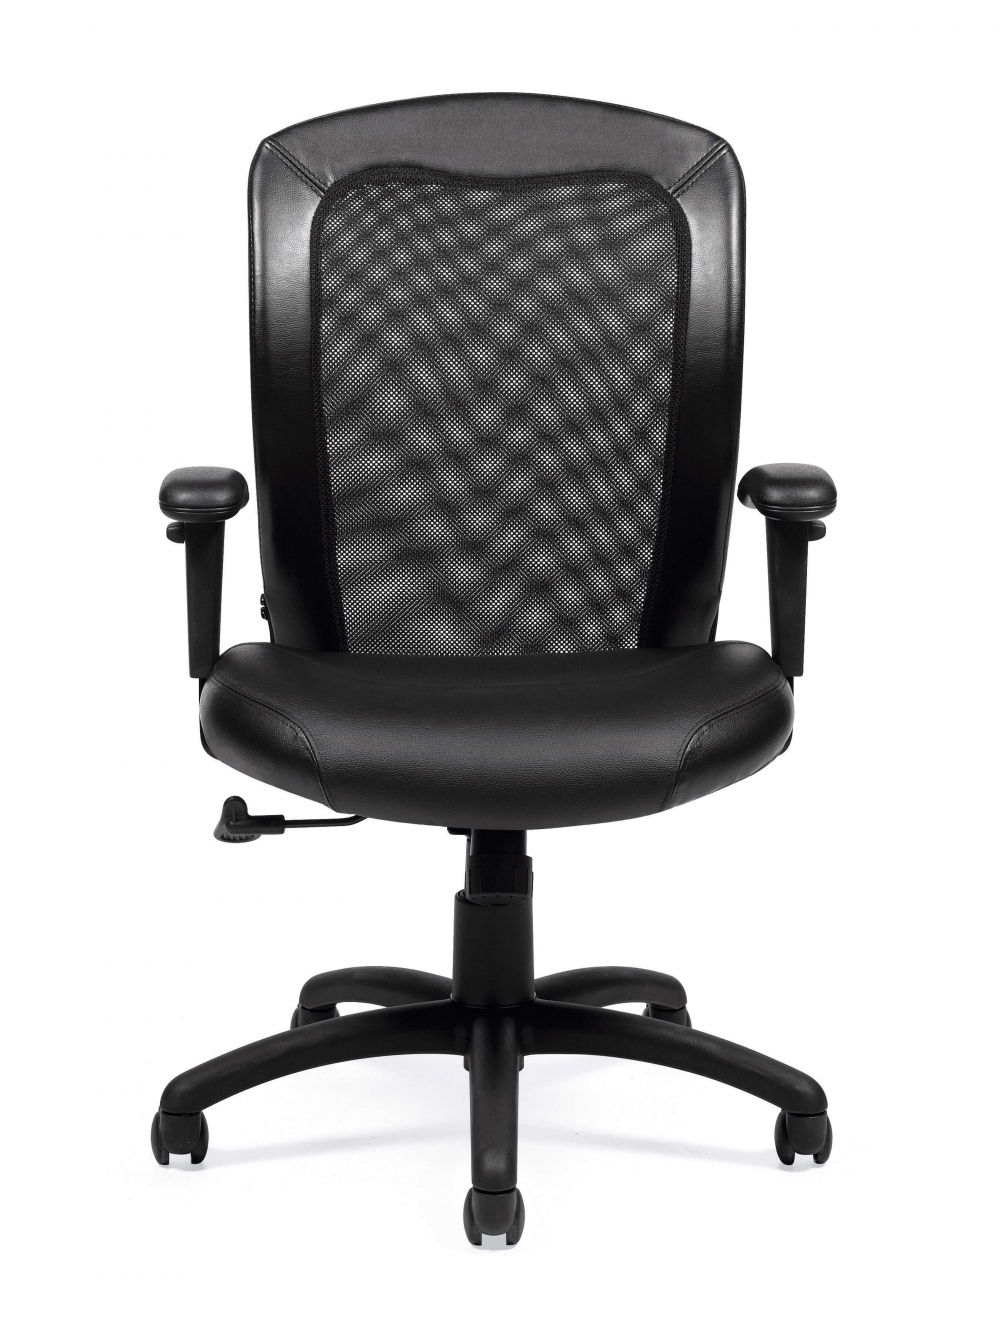 Contemporary office chair front view